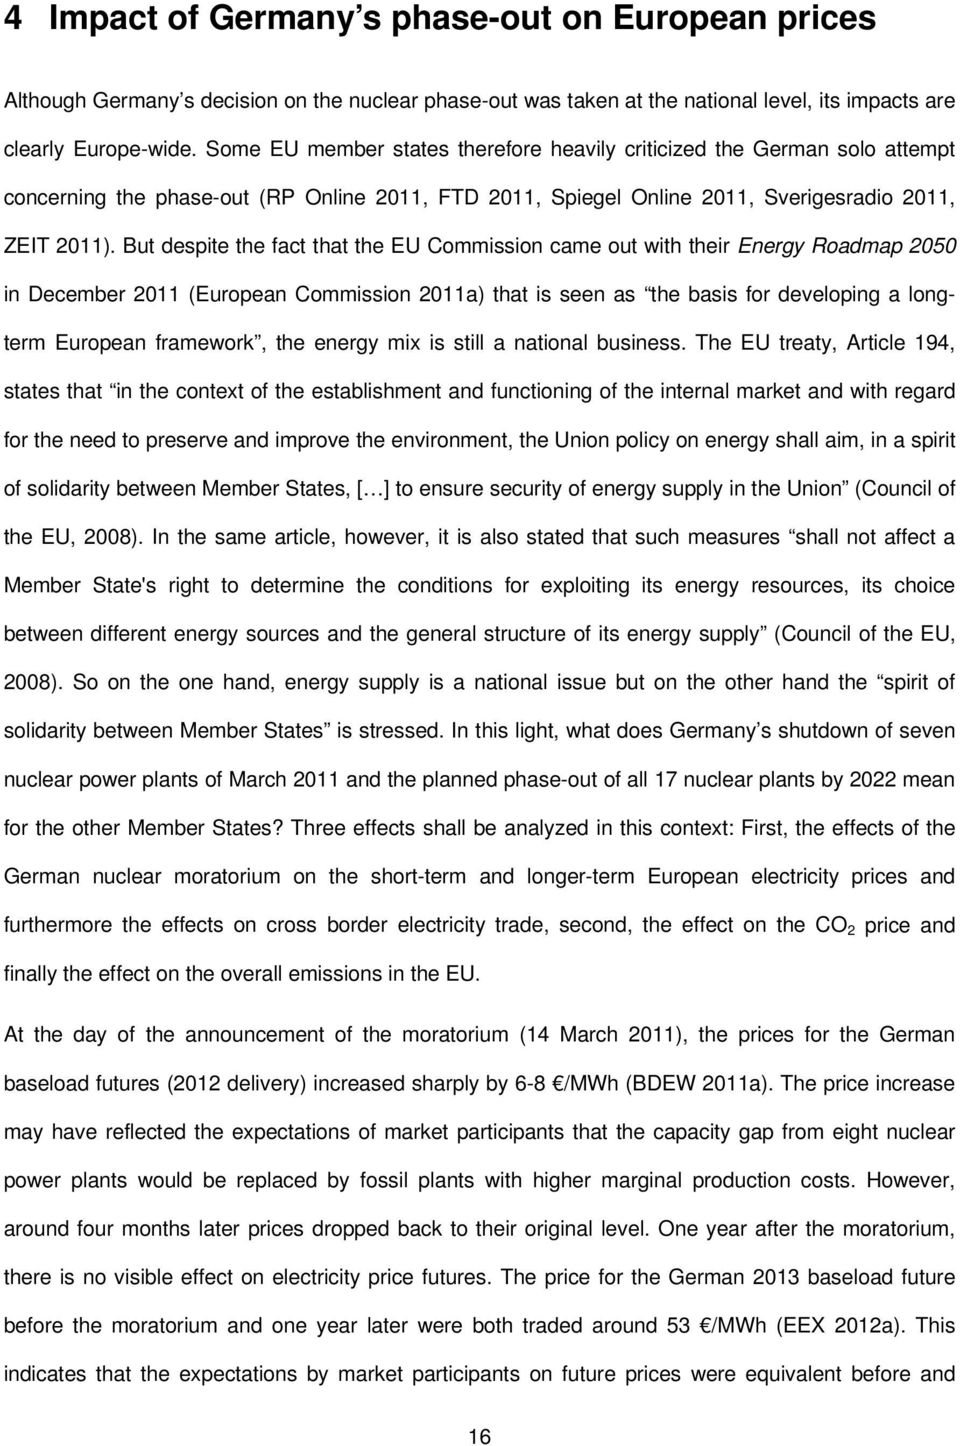 But despite the fact that the EU Commission came out with their Energy Roadmap 2050 in December 2011 (European Commission 2011a) that is seen as the basis for developing a longterm European